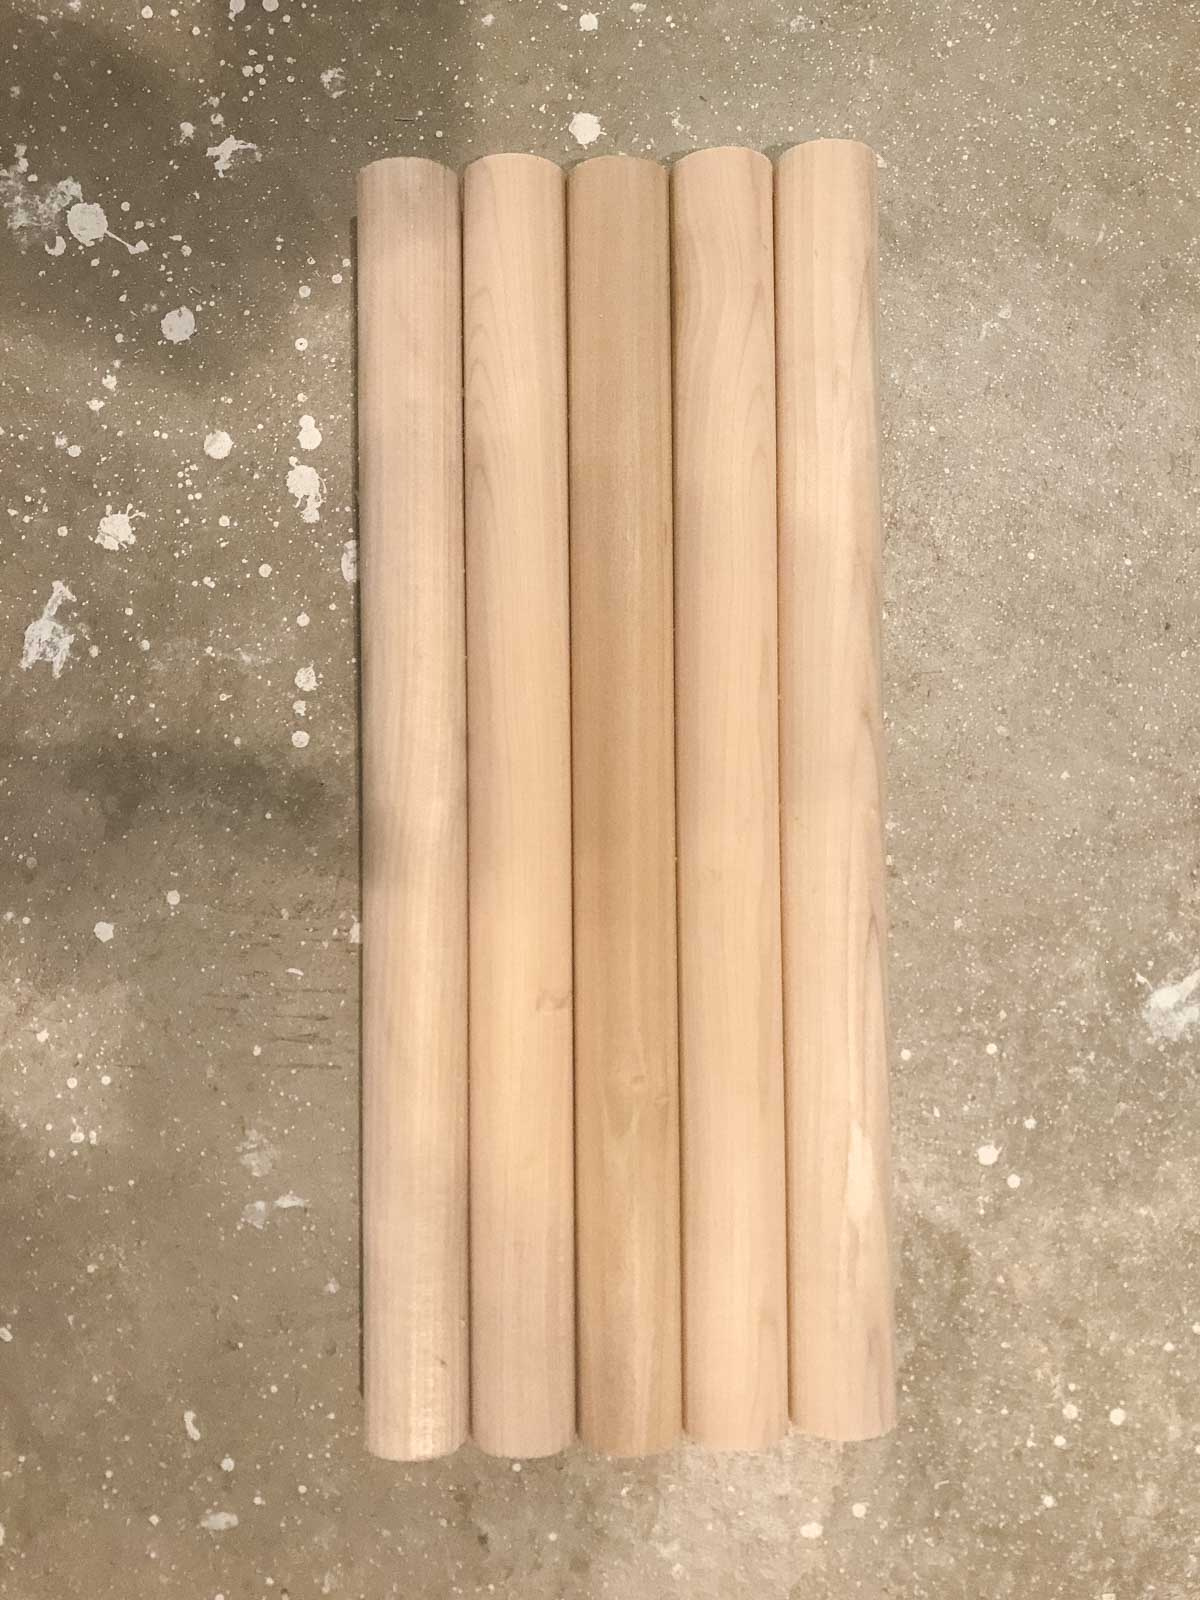 five 1 1/2 inch dowels cut to size and on floor